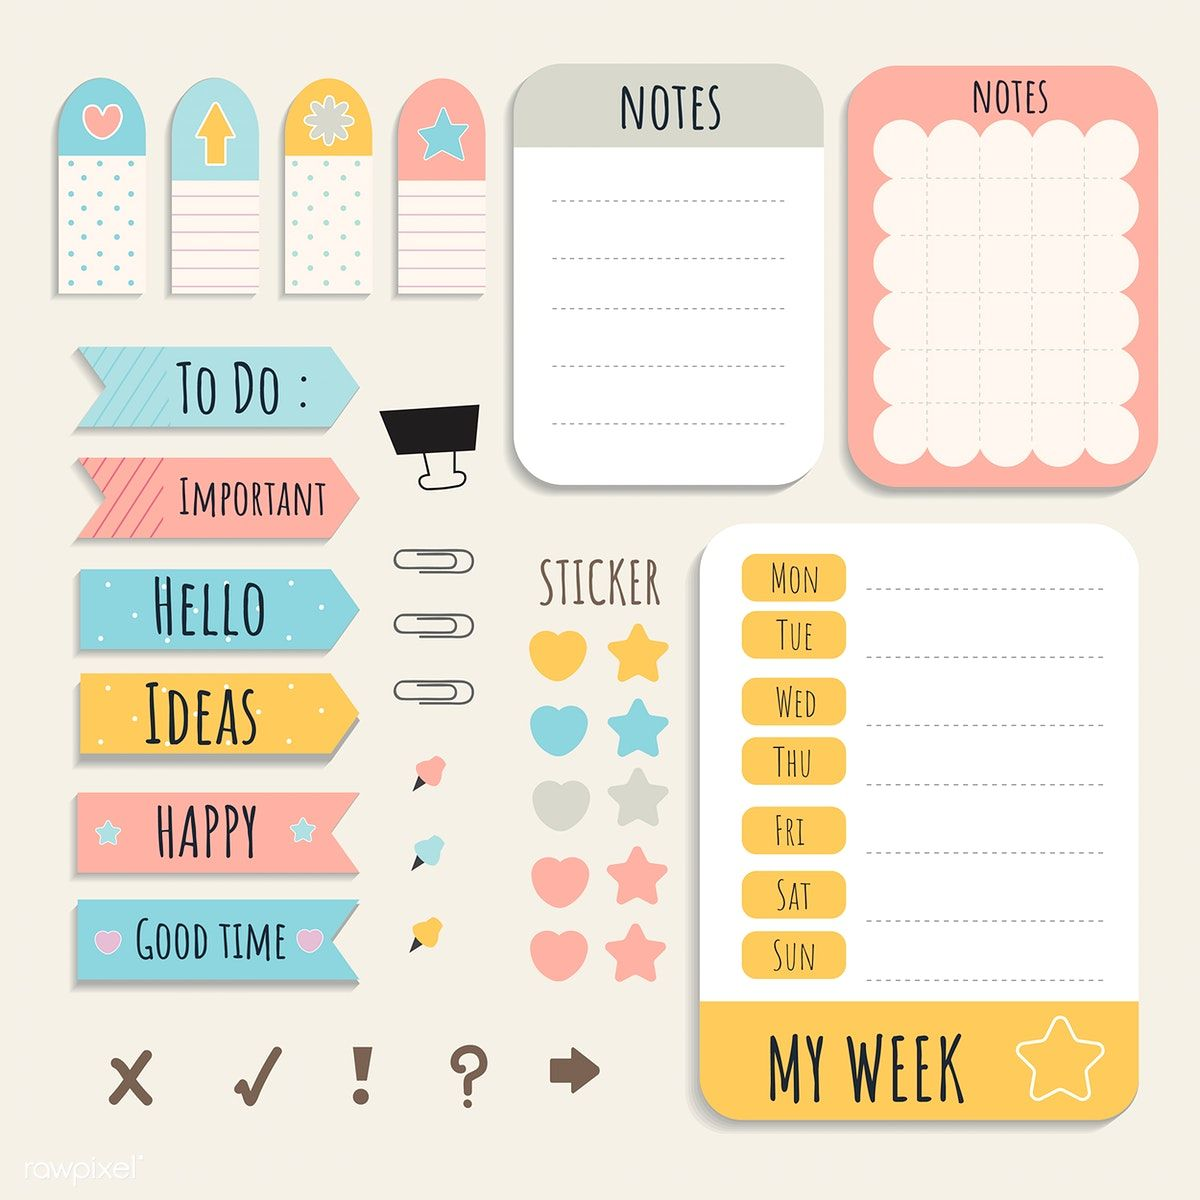 Cute Sticky Note Papers Printable Set Free Image By Rawpixel Com